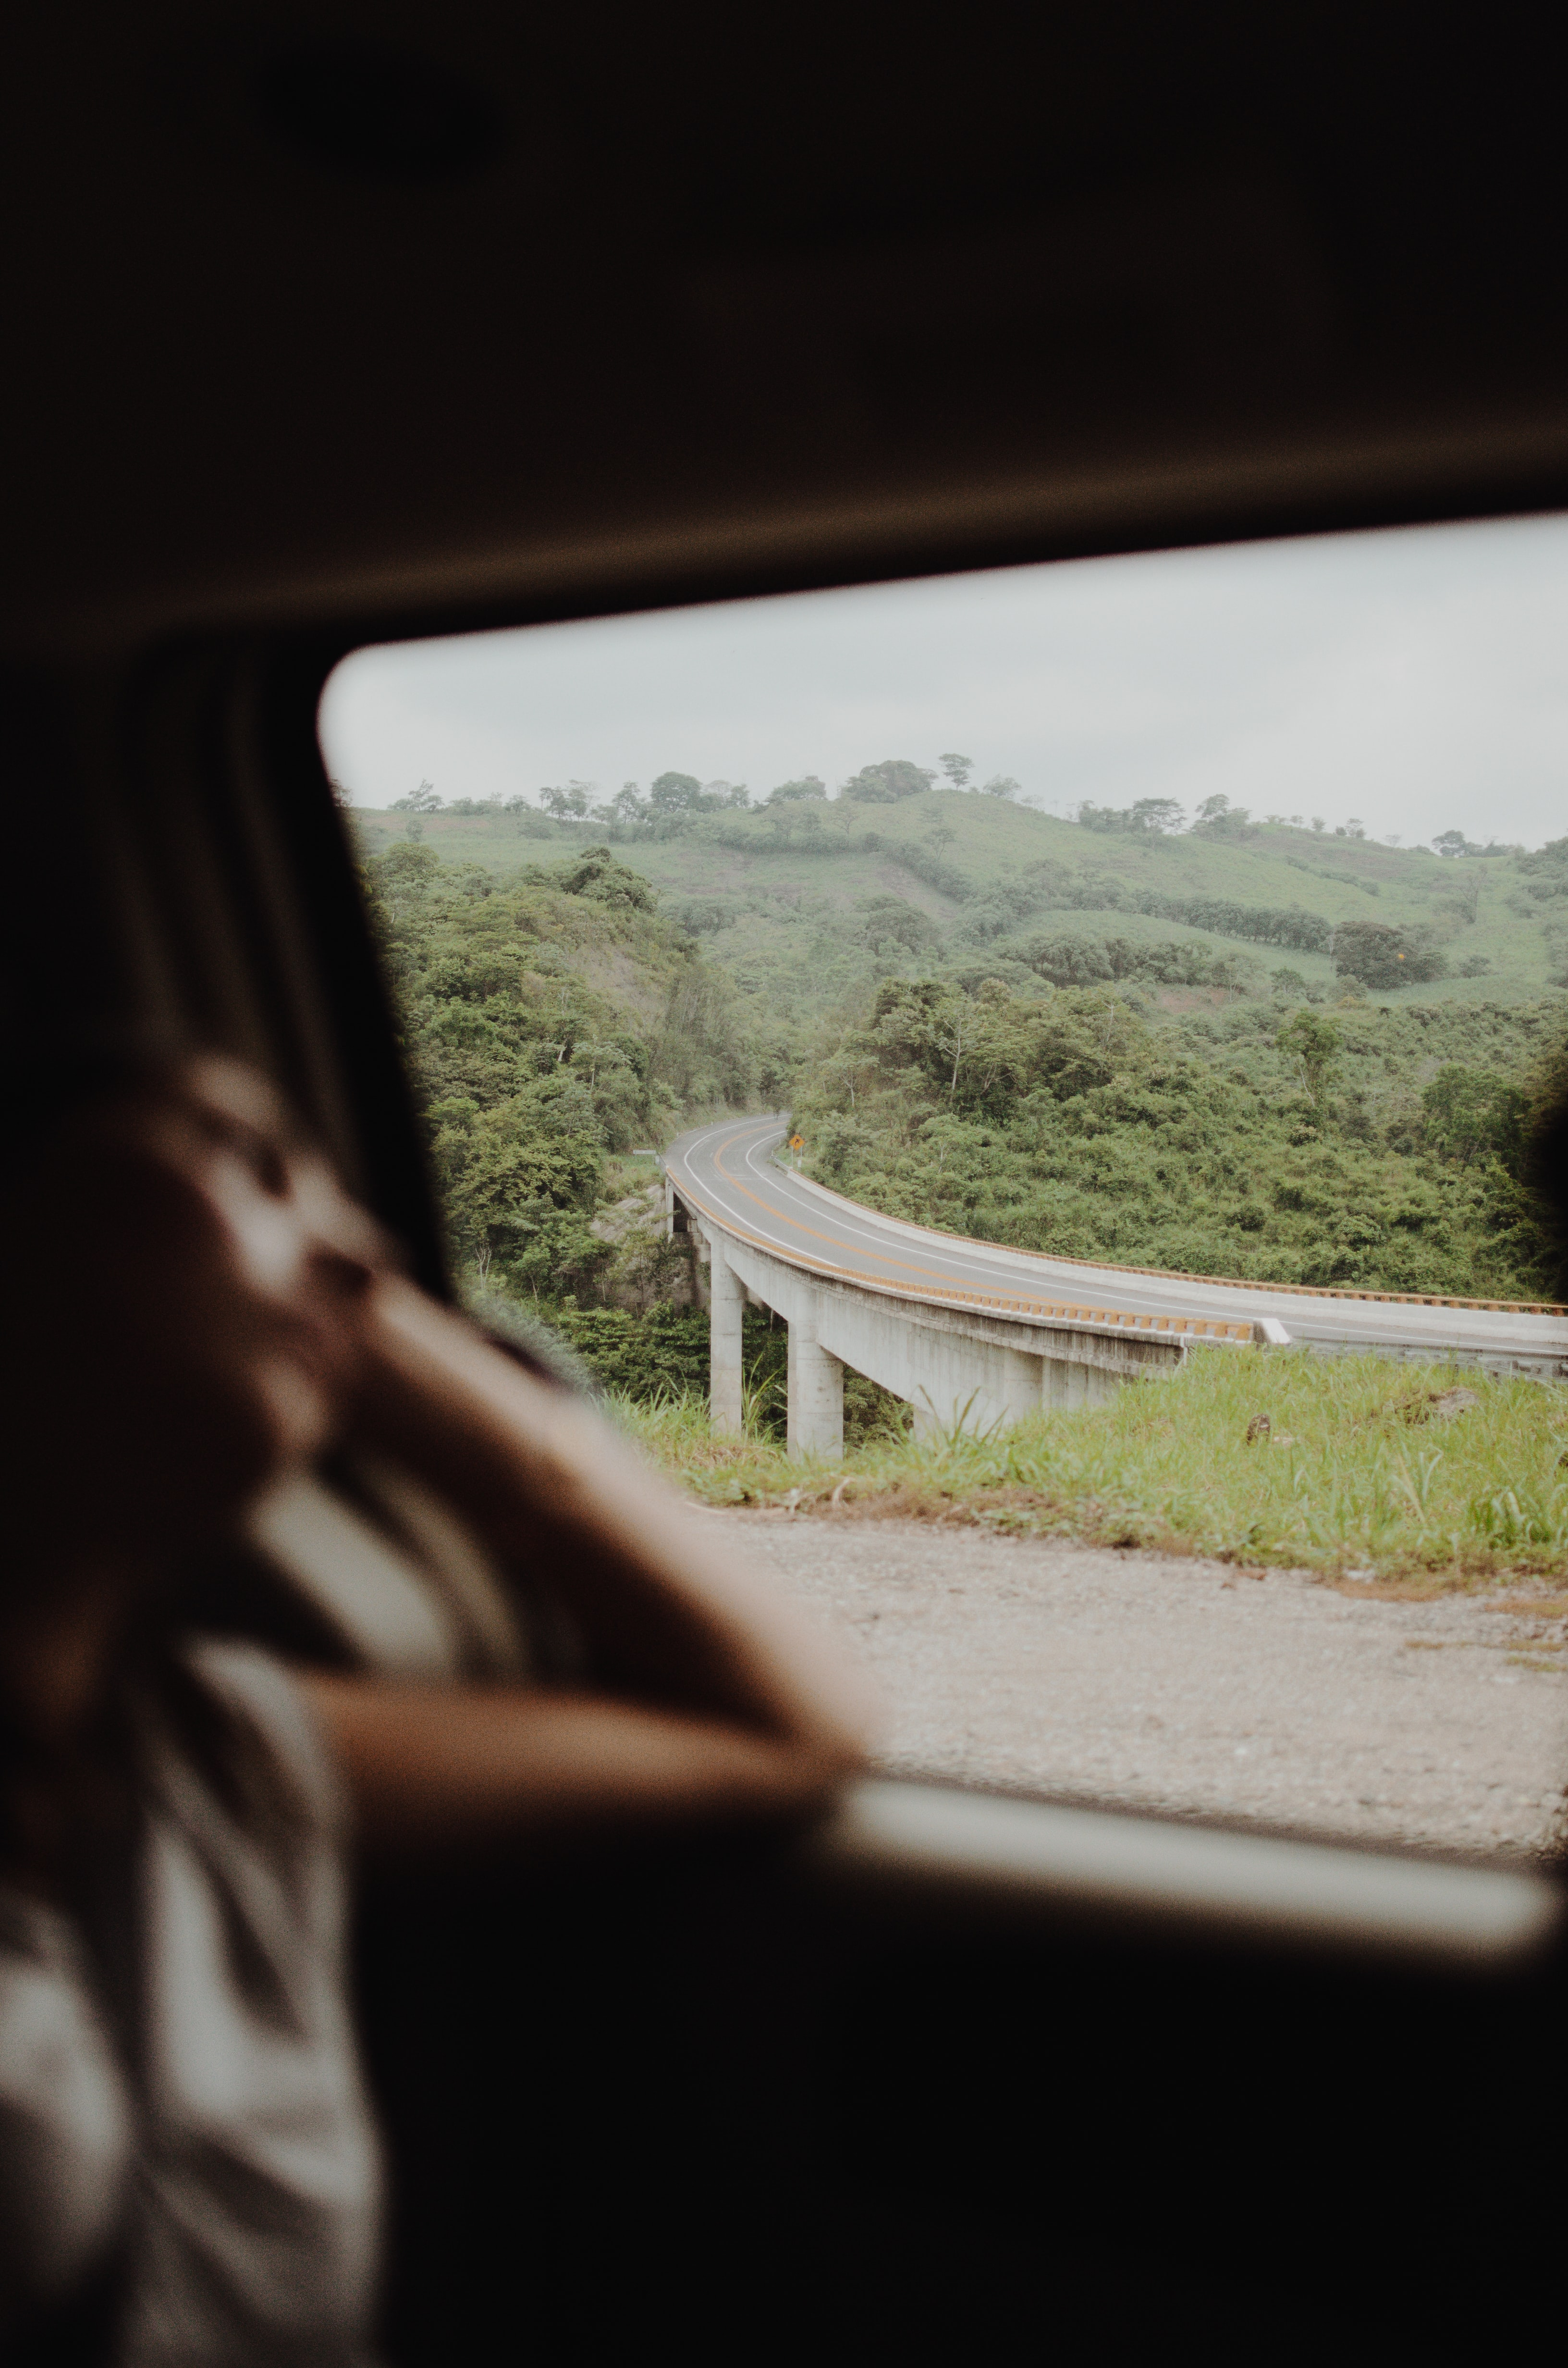 Blurry shot of a person looking out a car window at a countryside